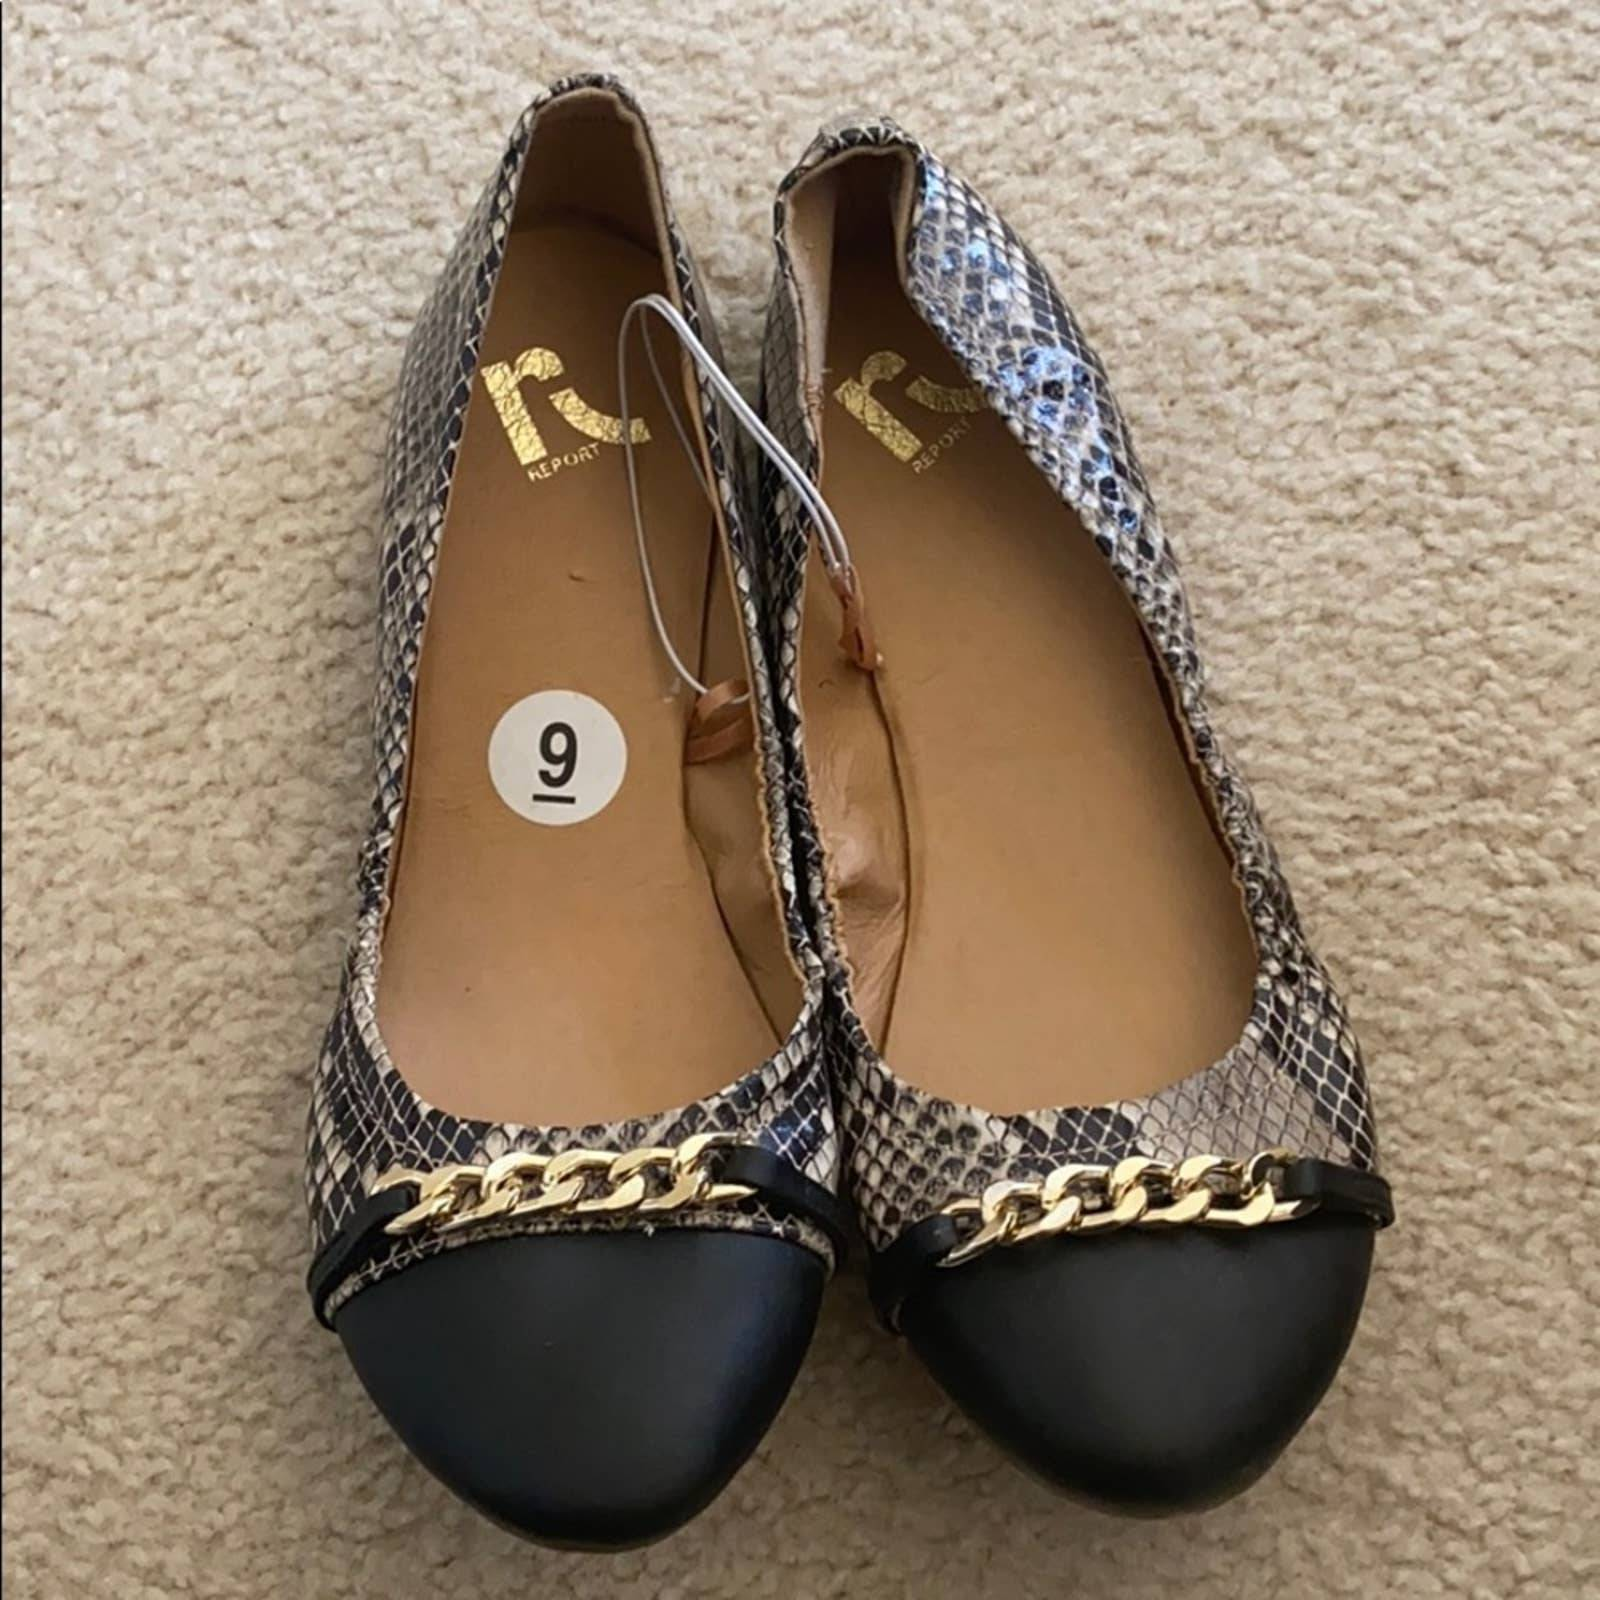 Report - Faux Snake Skin Flats Size 9